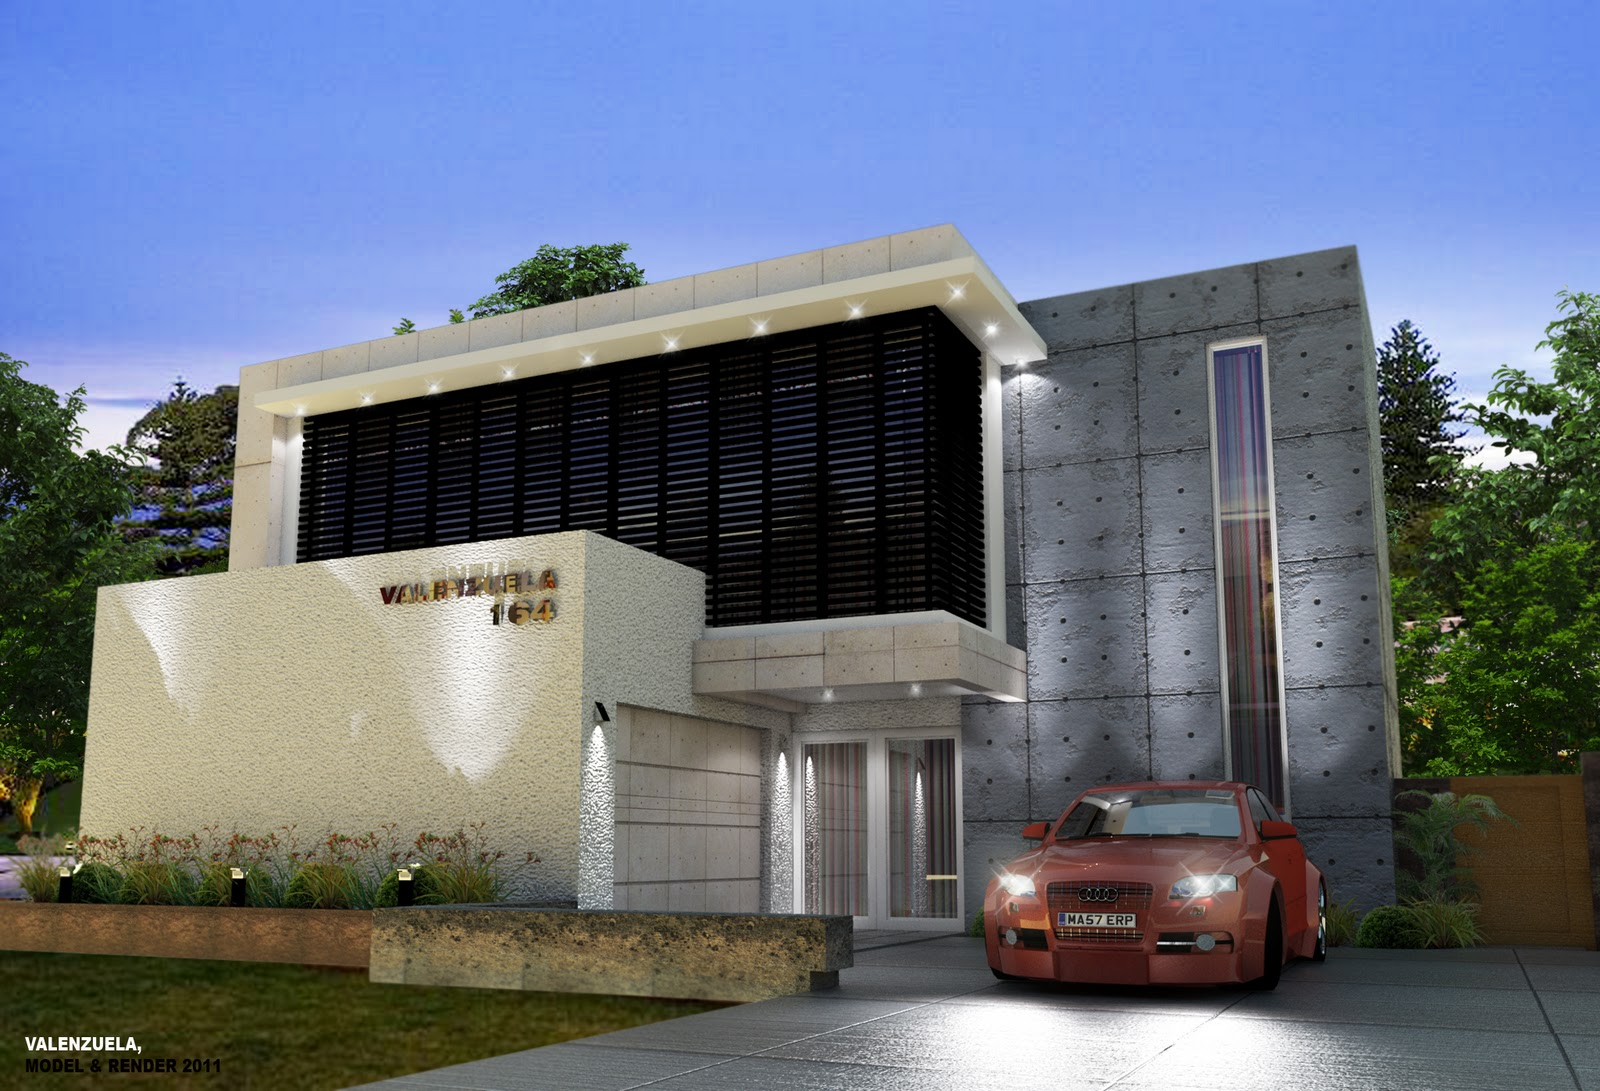 Valenzuela sketchup vray user exterior render 3d visualization for Setting render vray sketchup exterior